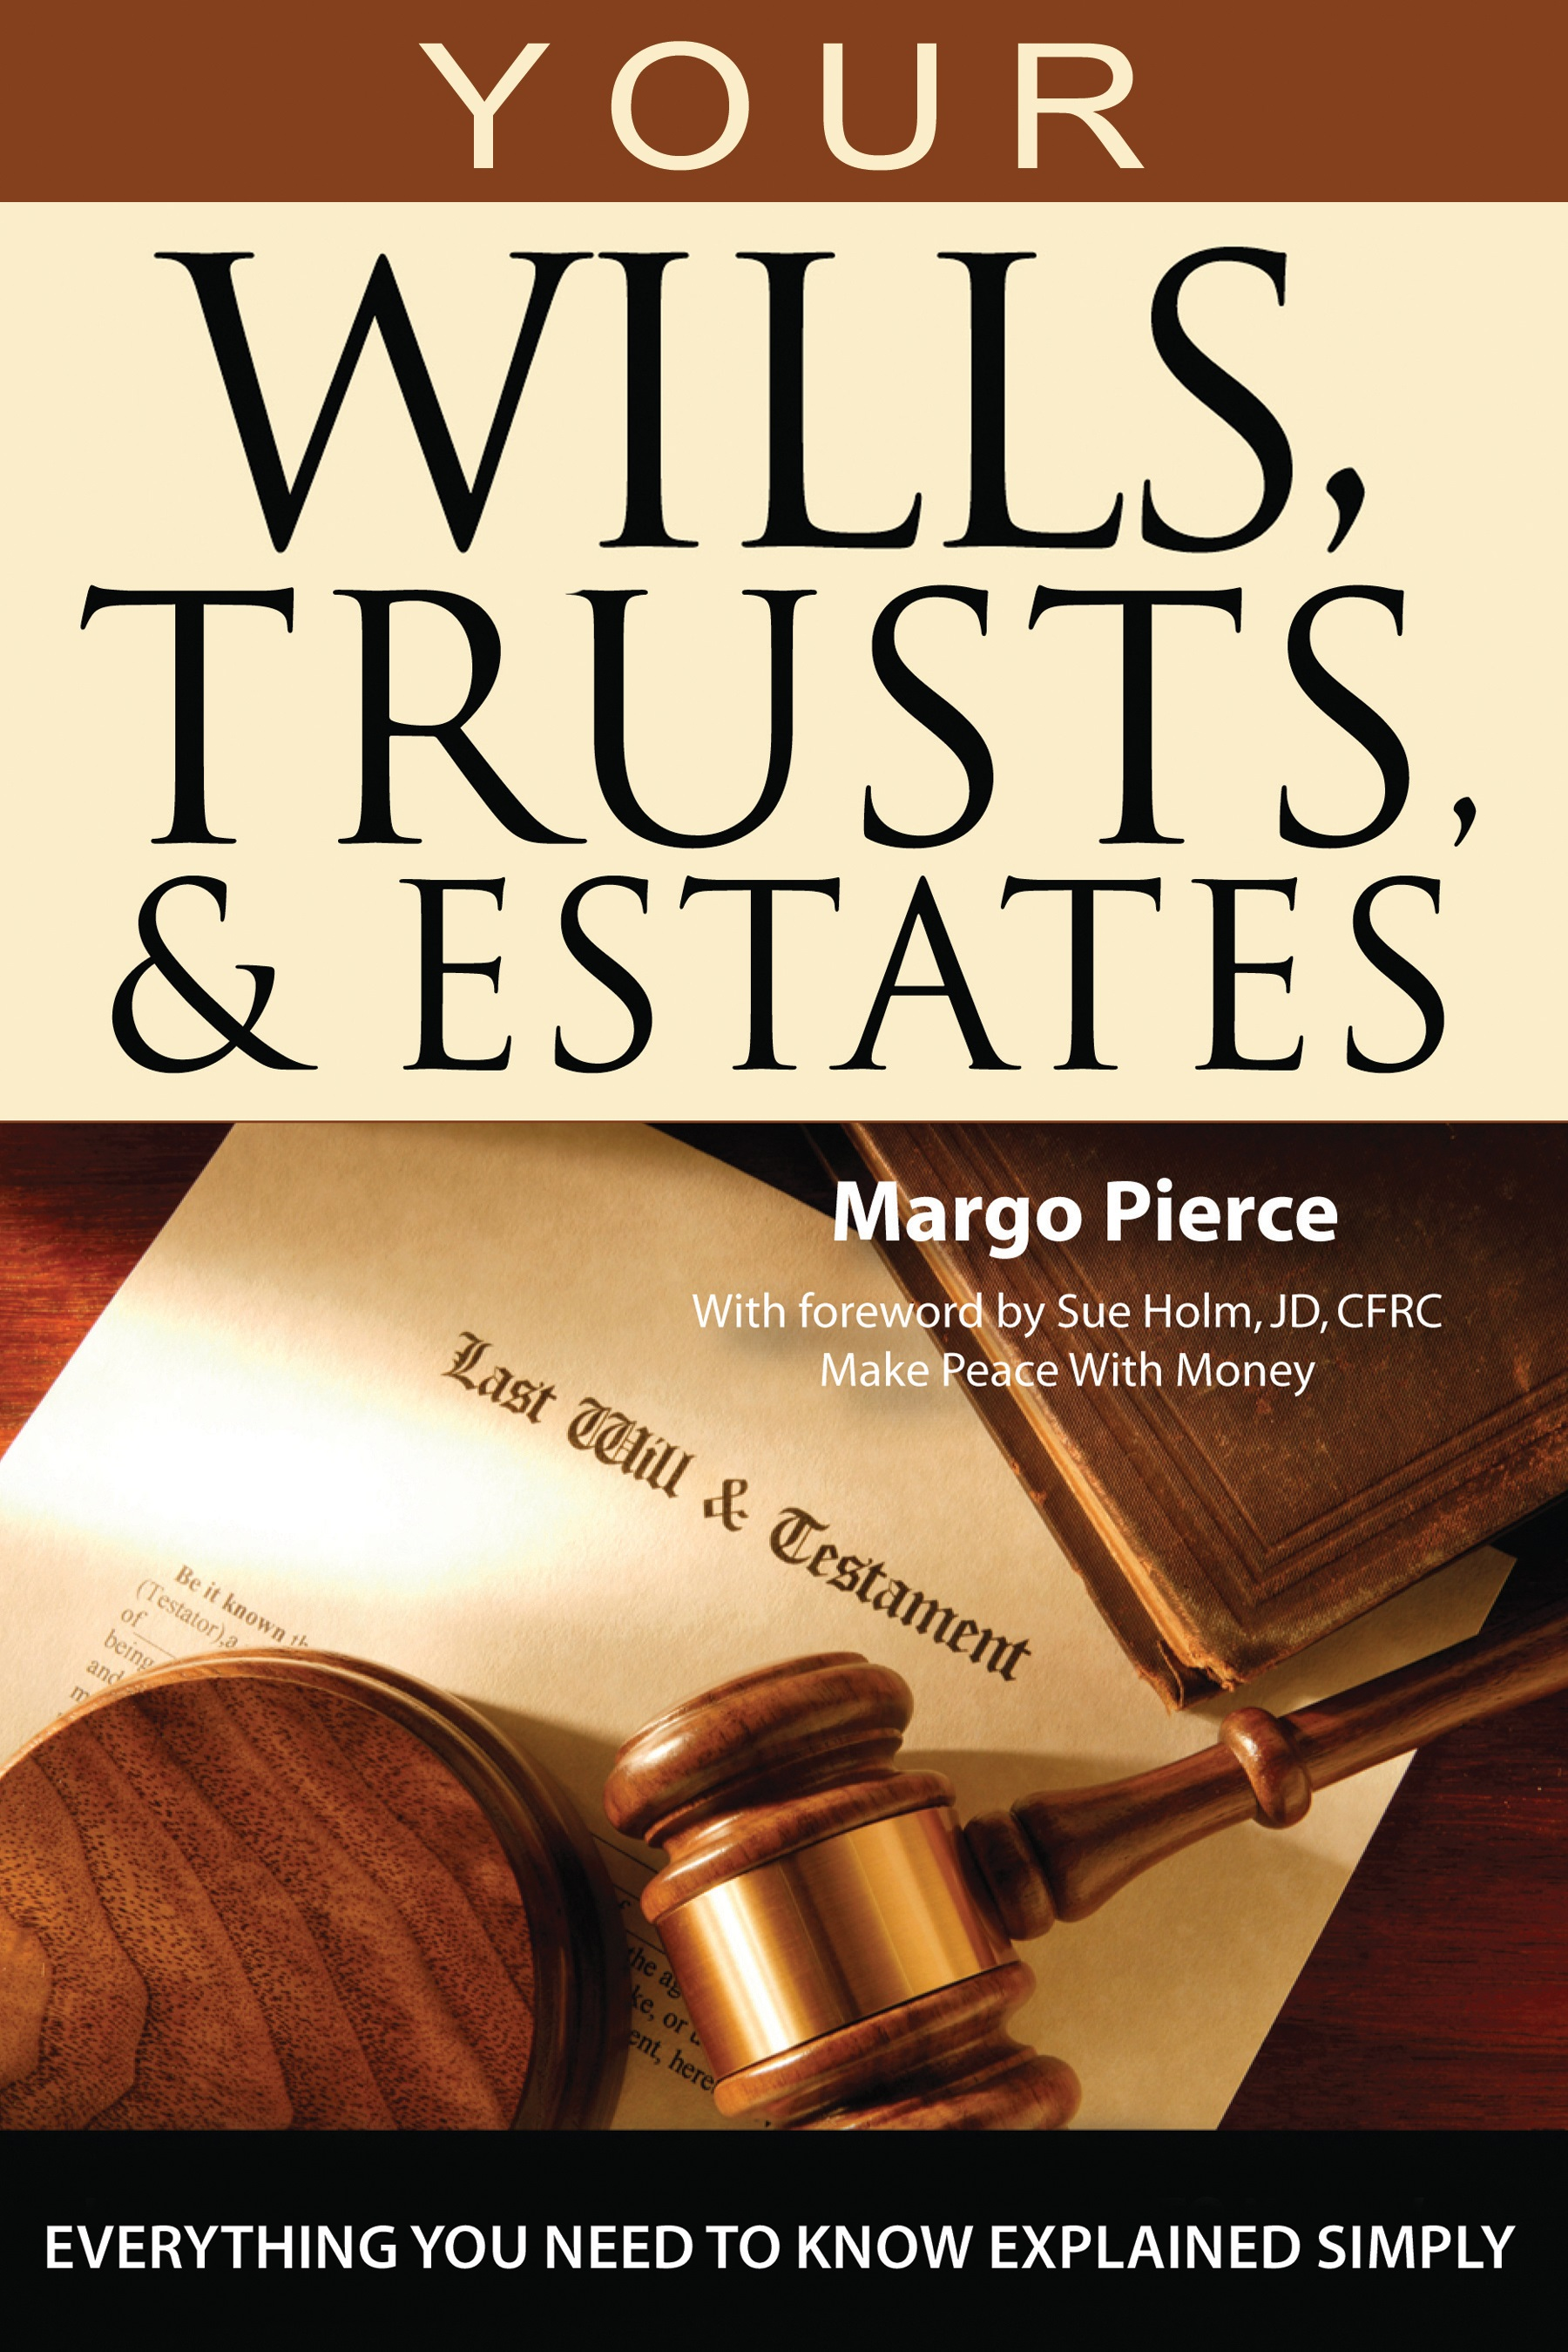 Your Wills, Trusts, & Estates Explained Simply Important Information You Need to Know